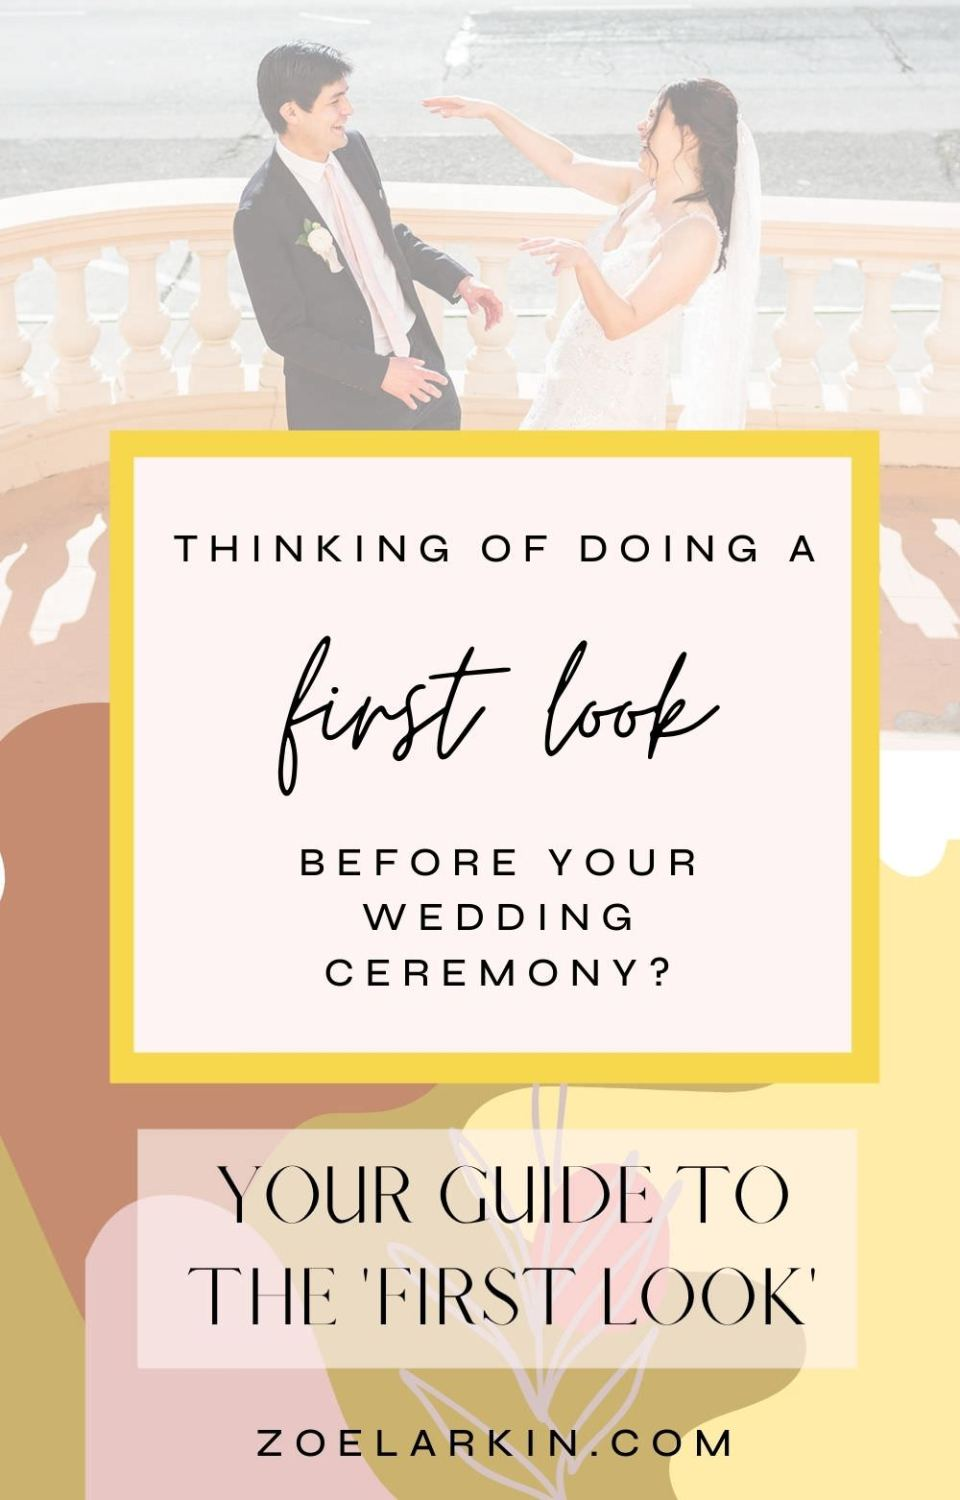 A guide to whether or not to do the 'first look' on your wedding day, the trend where the bride and groom see each other prior to the wedding ceremony. Everything you need to know about the benefits as well as disadvantages of opting to have a first look so you can decide what works best for your wedding day | #firstlook #weddingphotography #bayareaweddingphotographer | zoelarkin.com